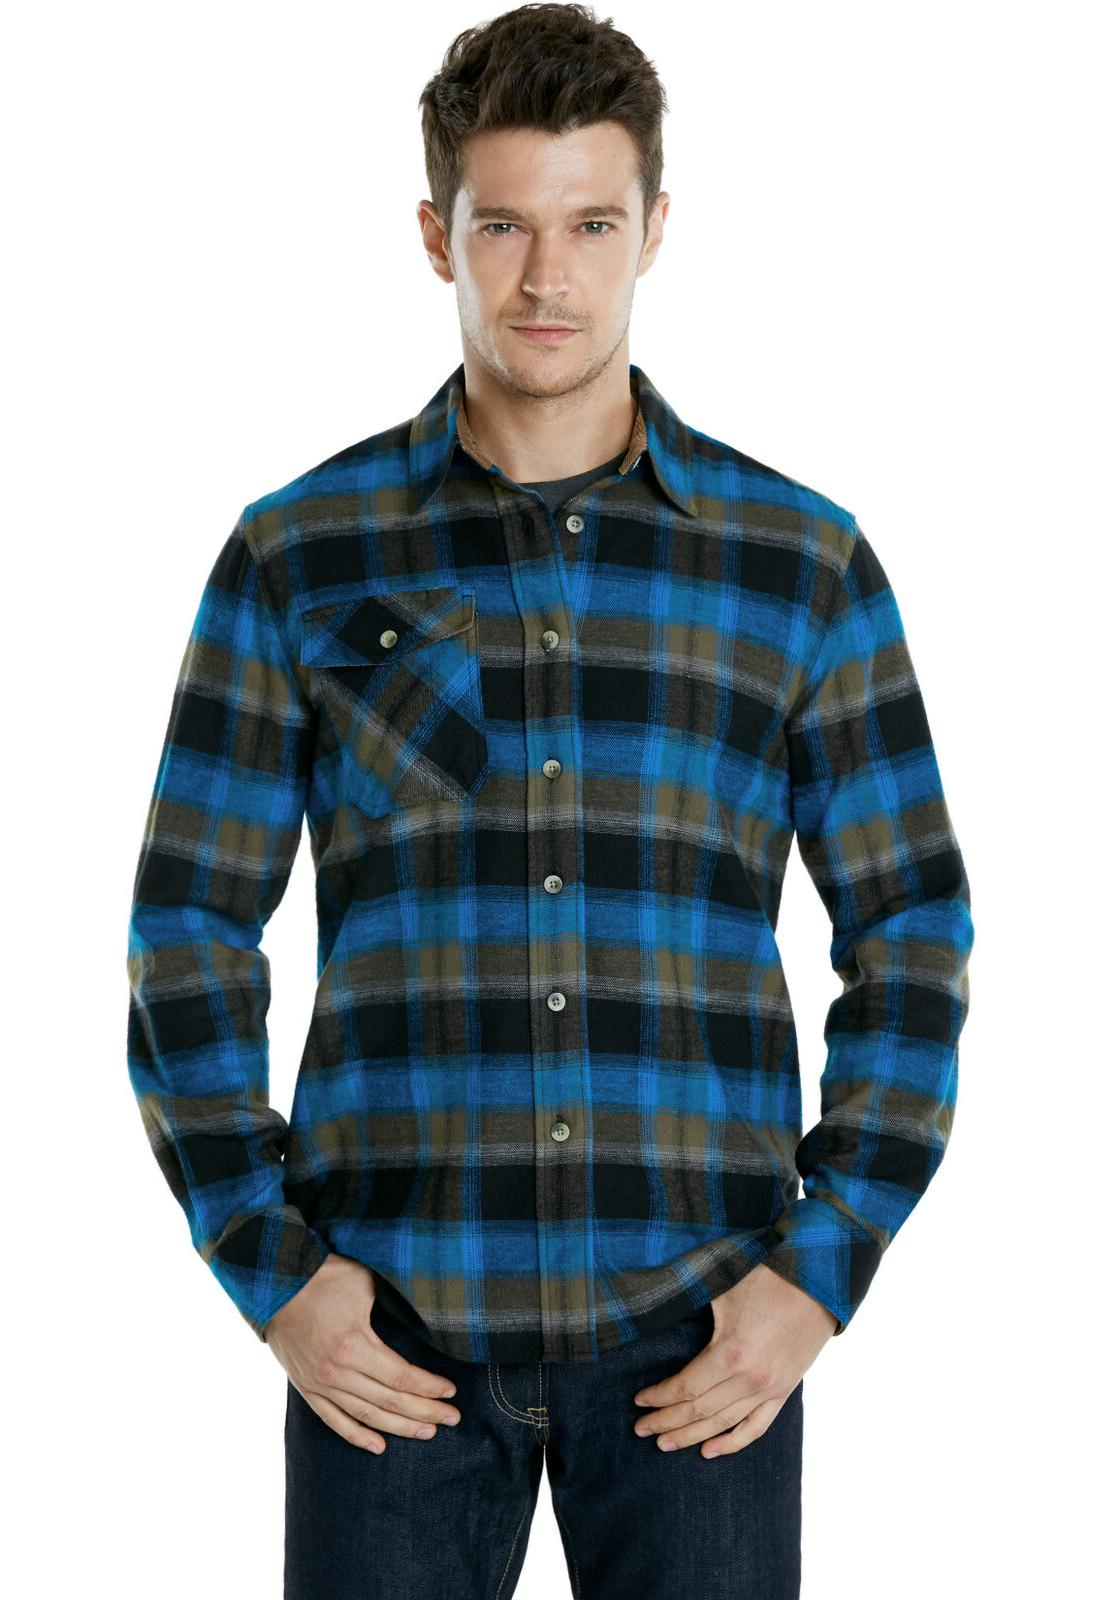 CQR Men's Cotton Flannel Shirt, Long Shirt, Outdoor Shirts